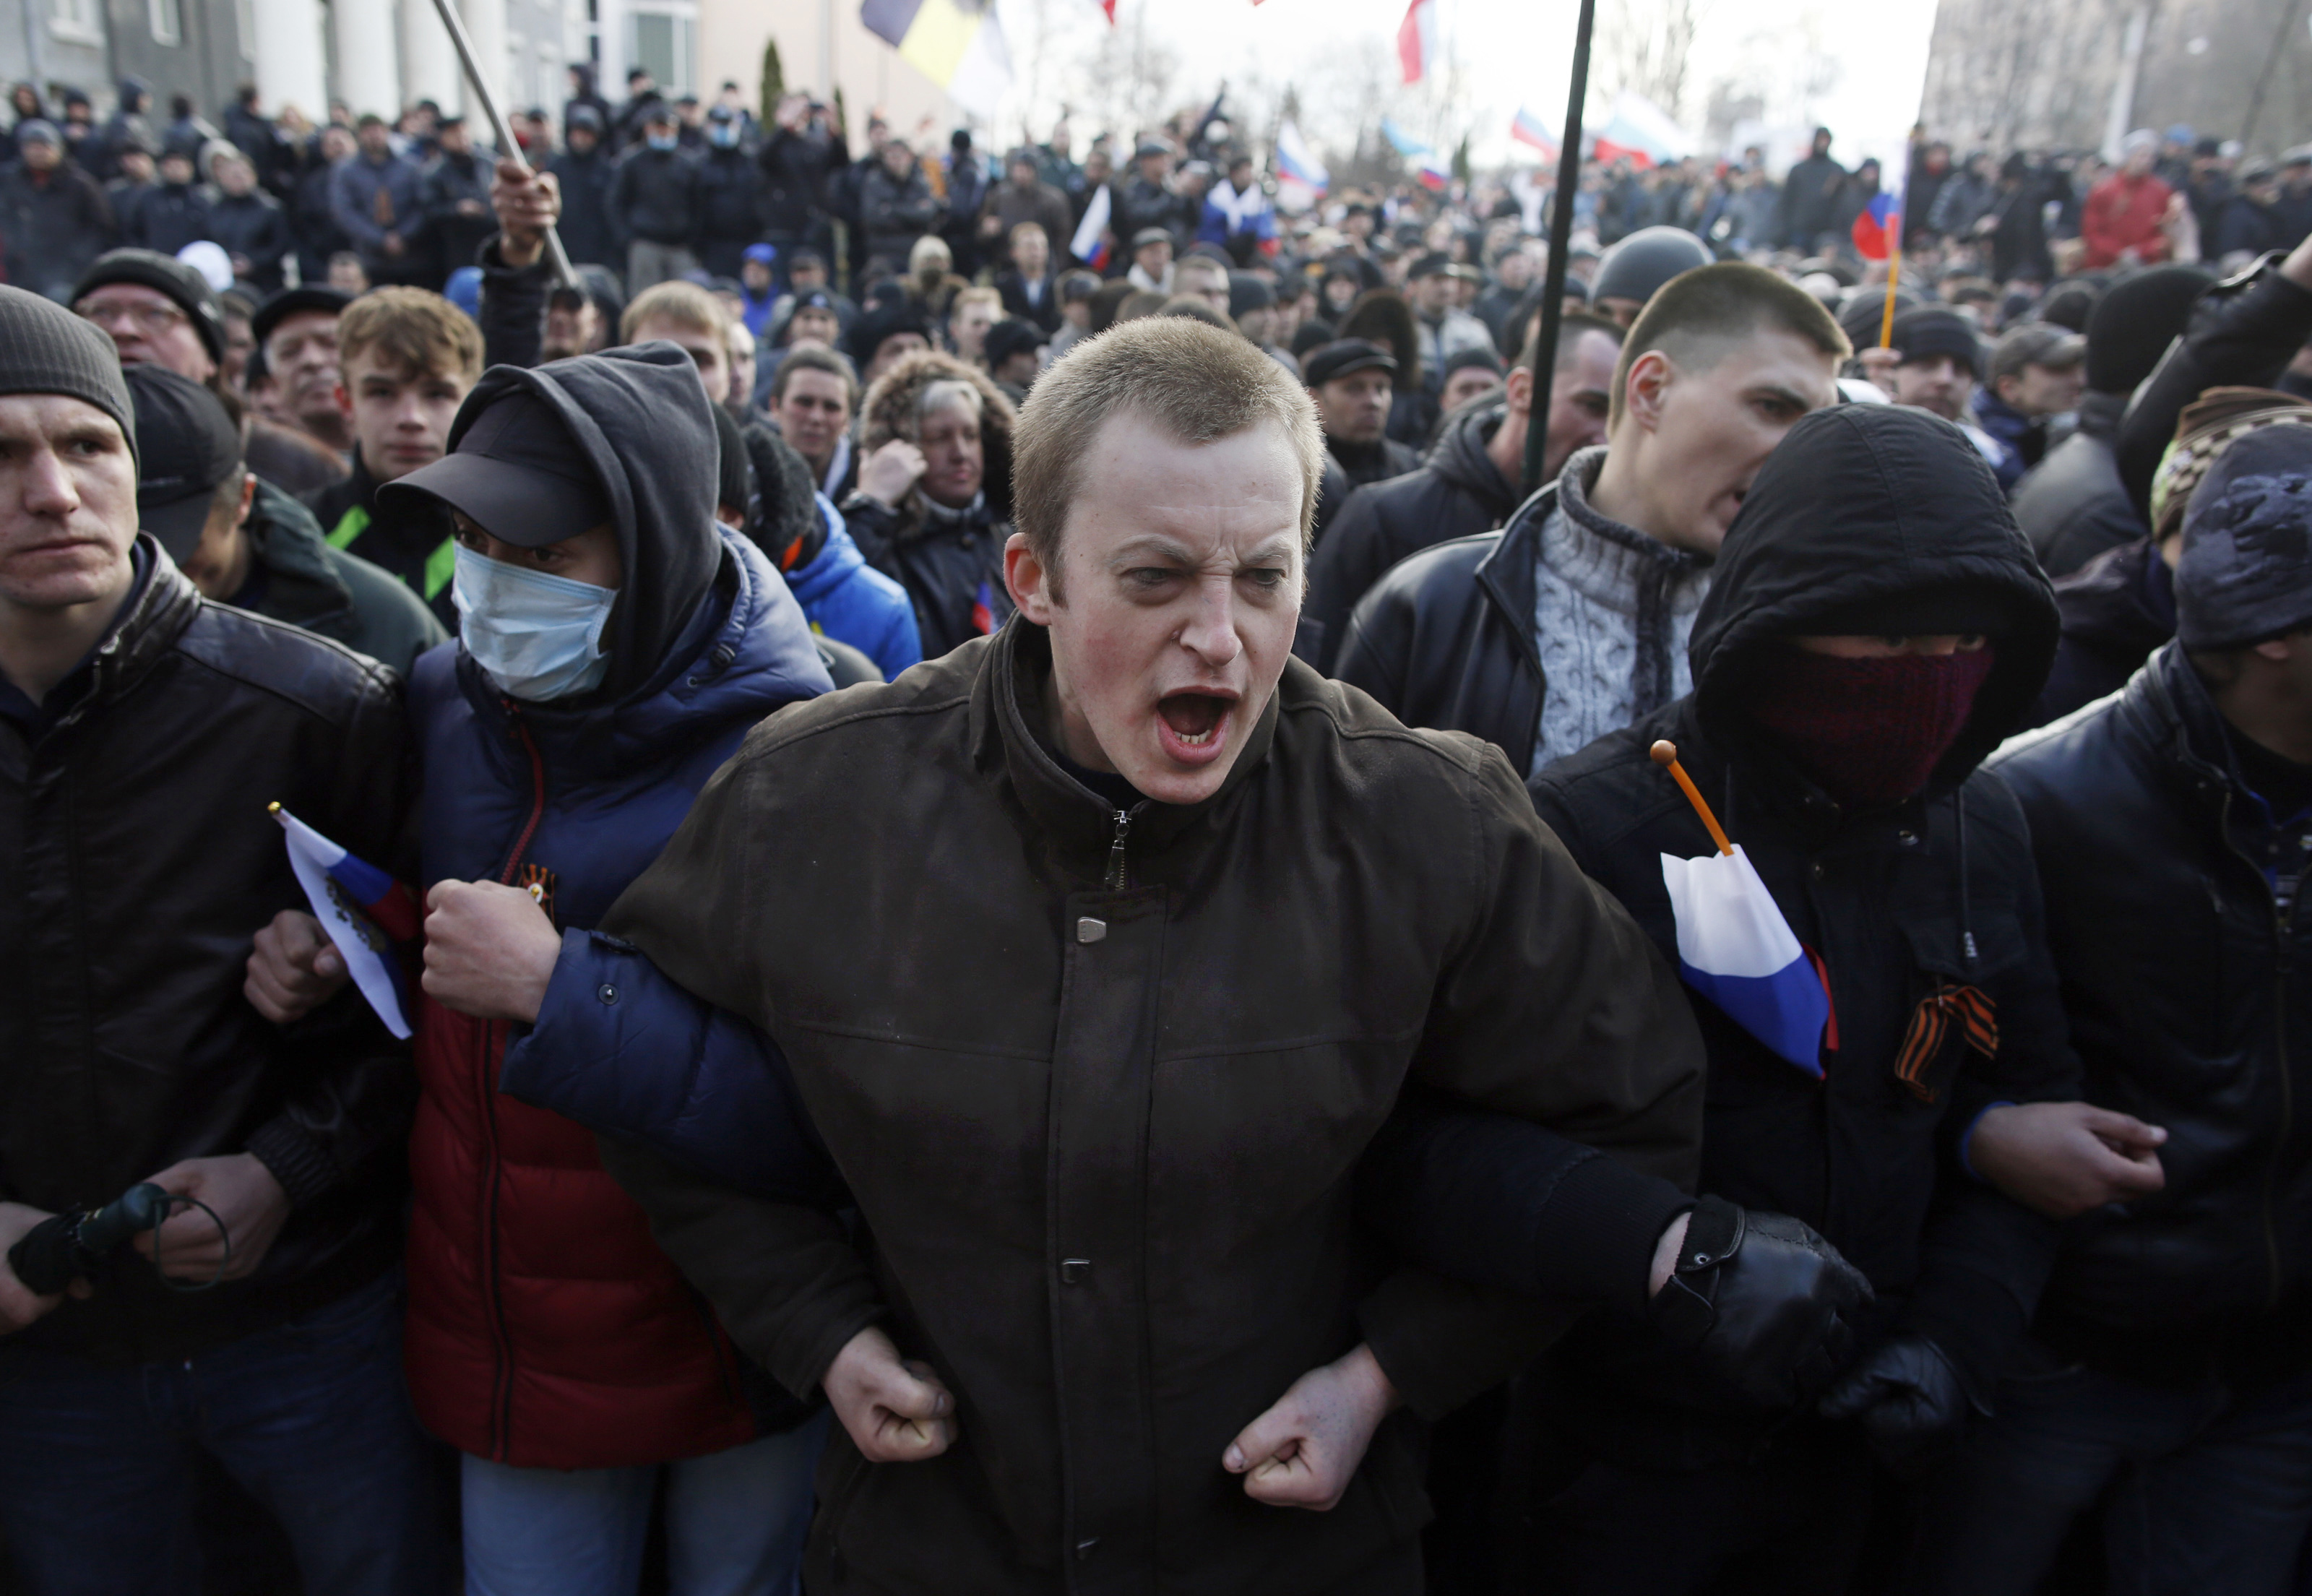 DONETSK, UKRAINE - MARCH 16: Pro-Russian protesters chant outside of the Donetsk Prosecutors Building before storming into the building during a protest in Donetsk, Ukraine on March 15, 2014.